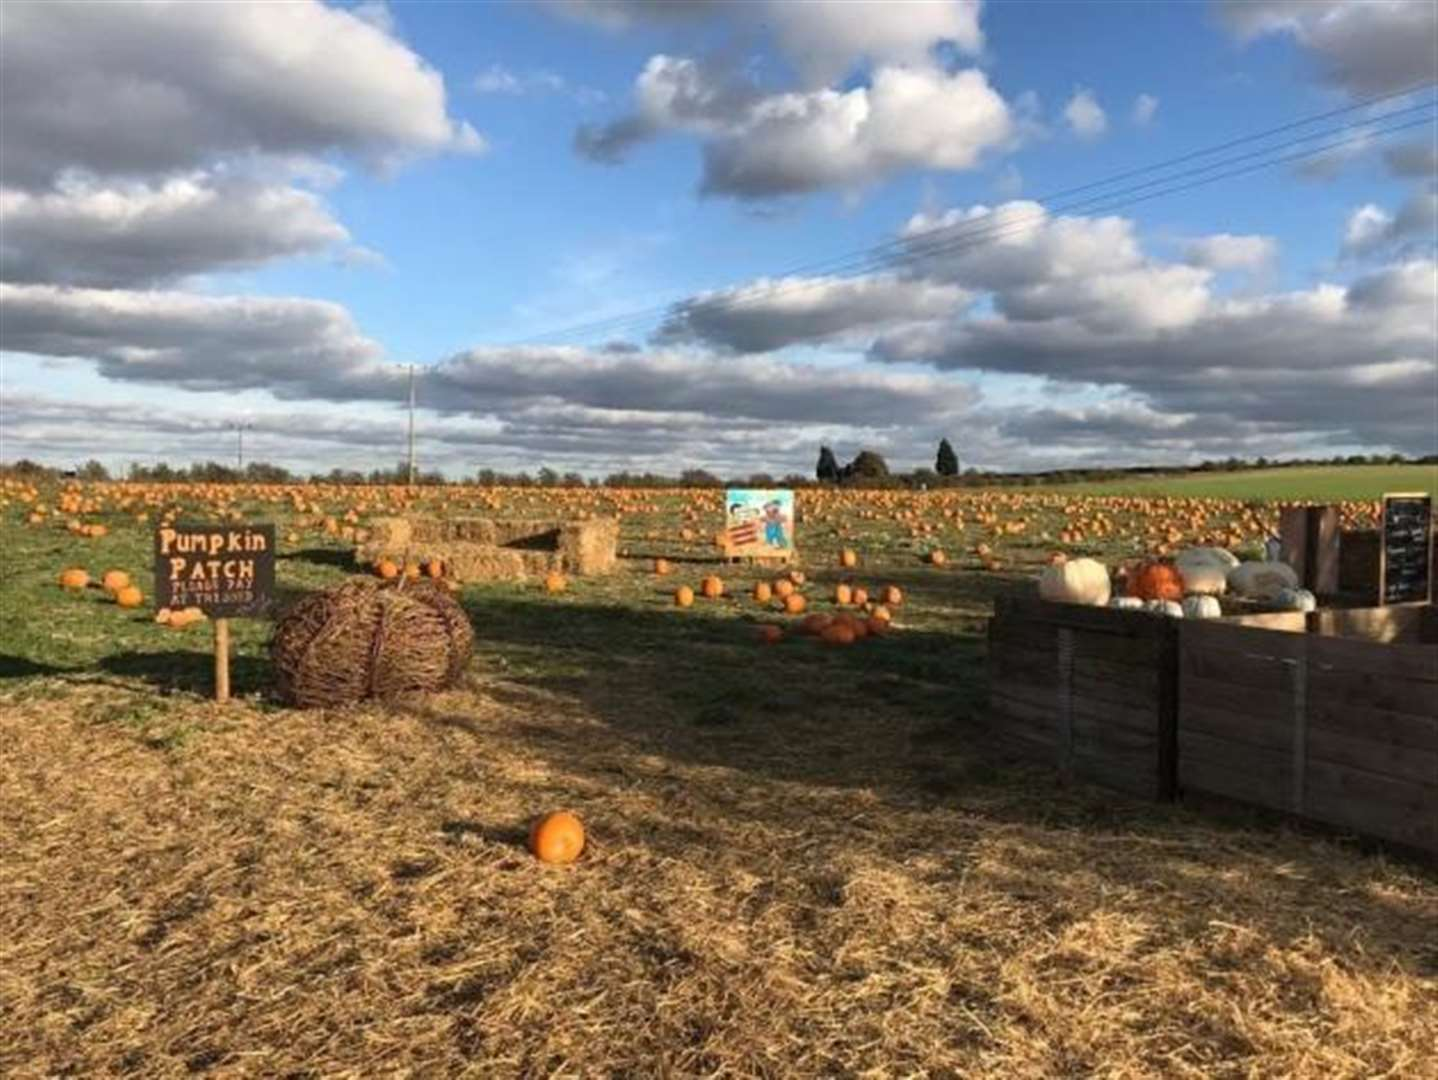 Pumpkin Jim's pick-you-own pumpkins returns to Cambridgeshire this half term